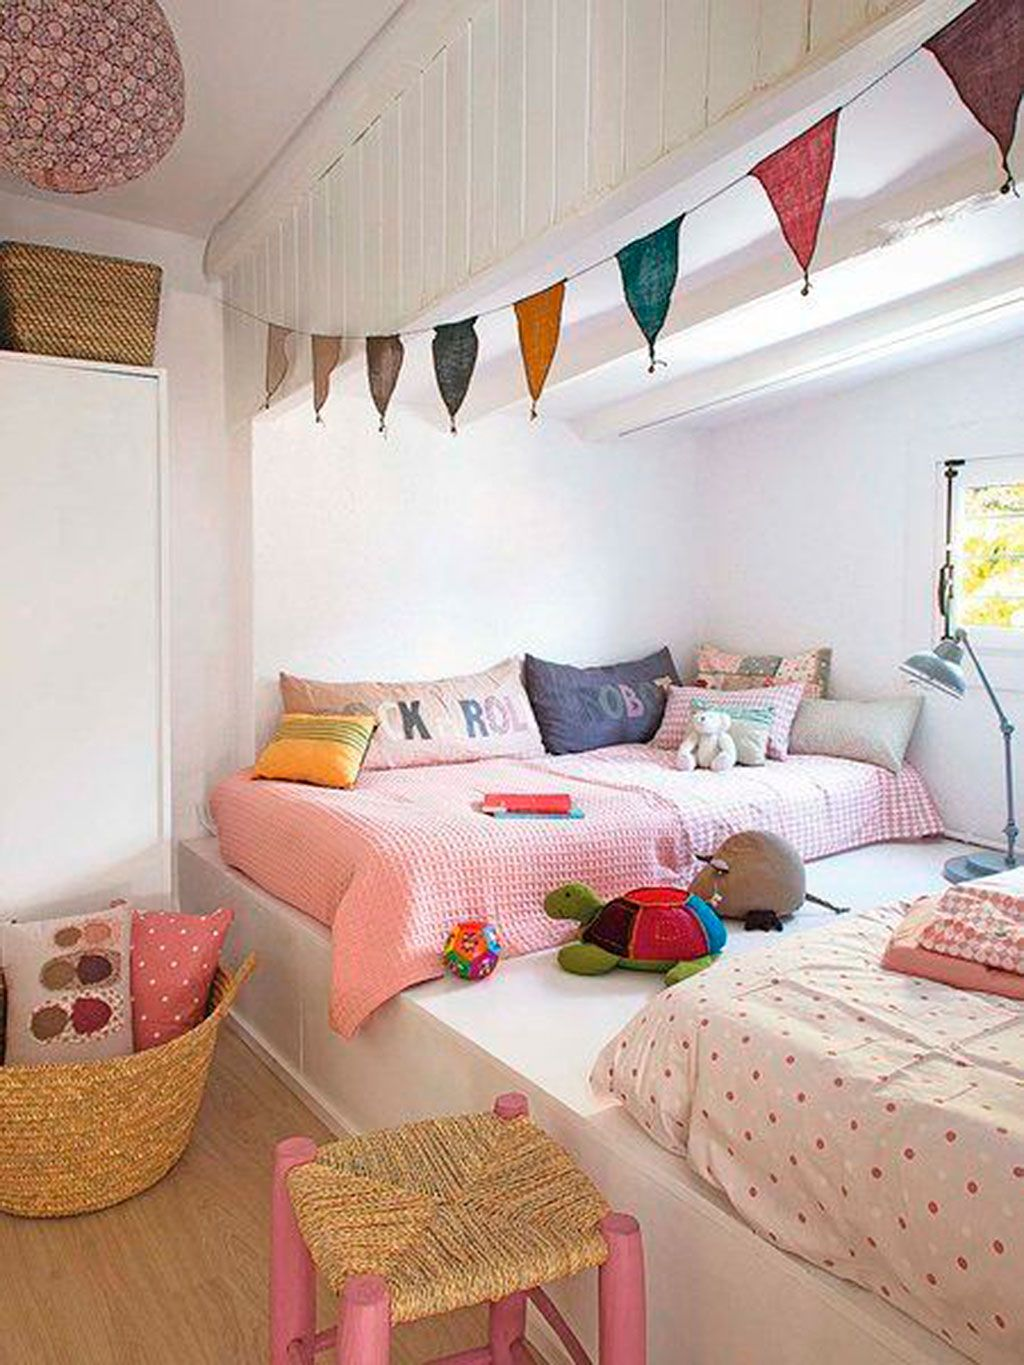 Decorar Dormitorios 20 Ideas Para Decorar Dormitorios Infantiles